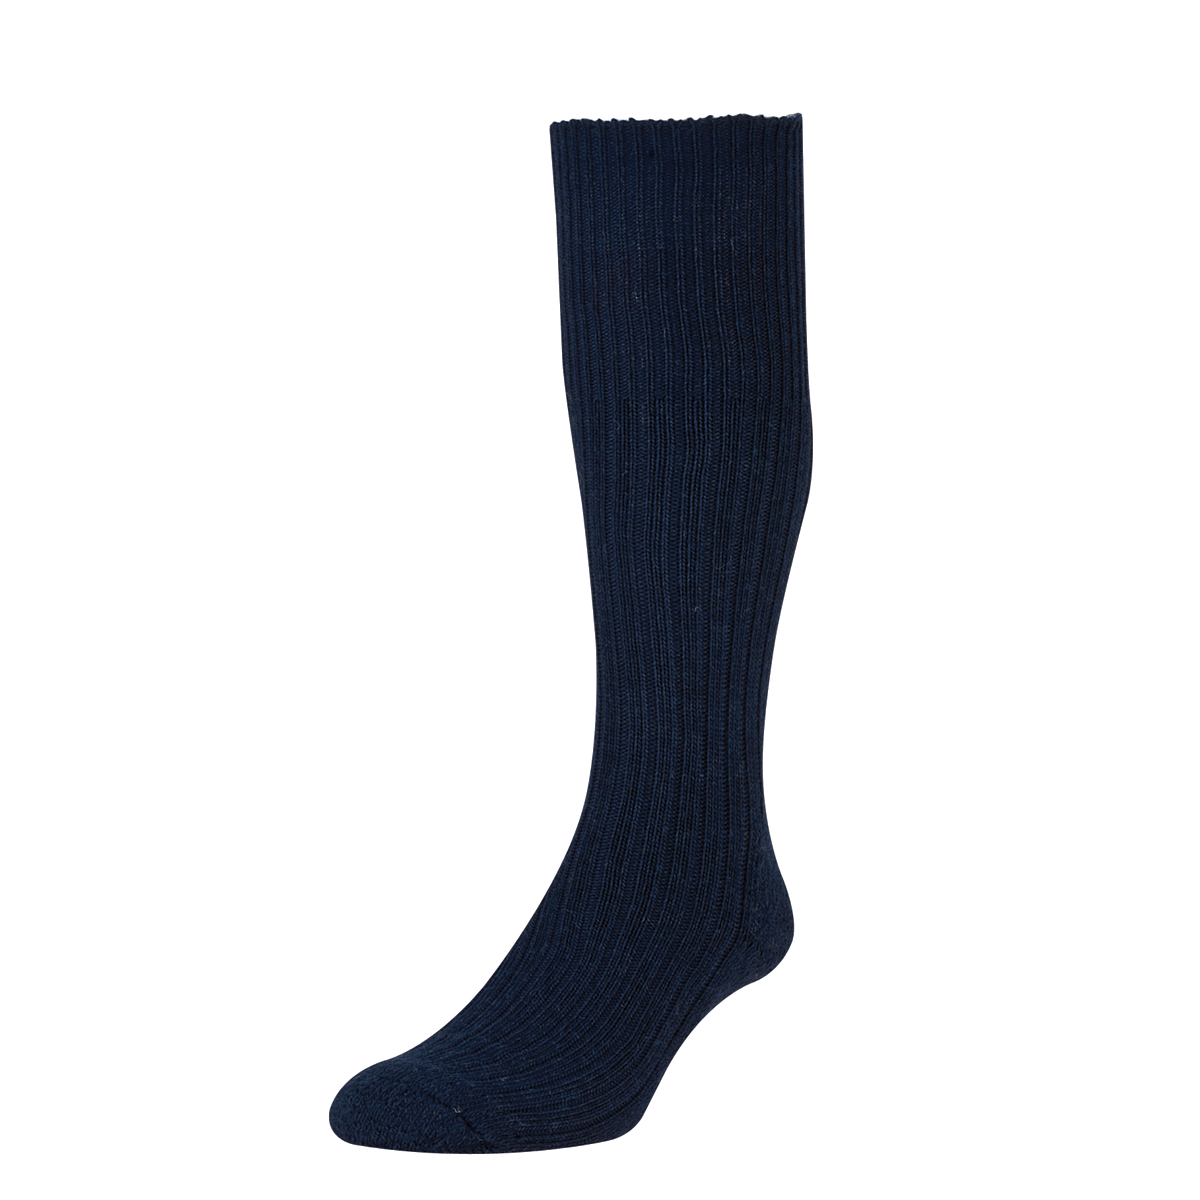 HJ Hall Commando Wool Socks, 6-11 UK Navy 12 pairs HJ3000